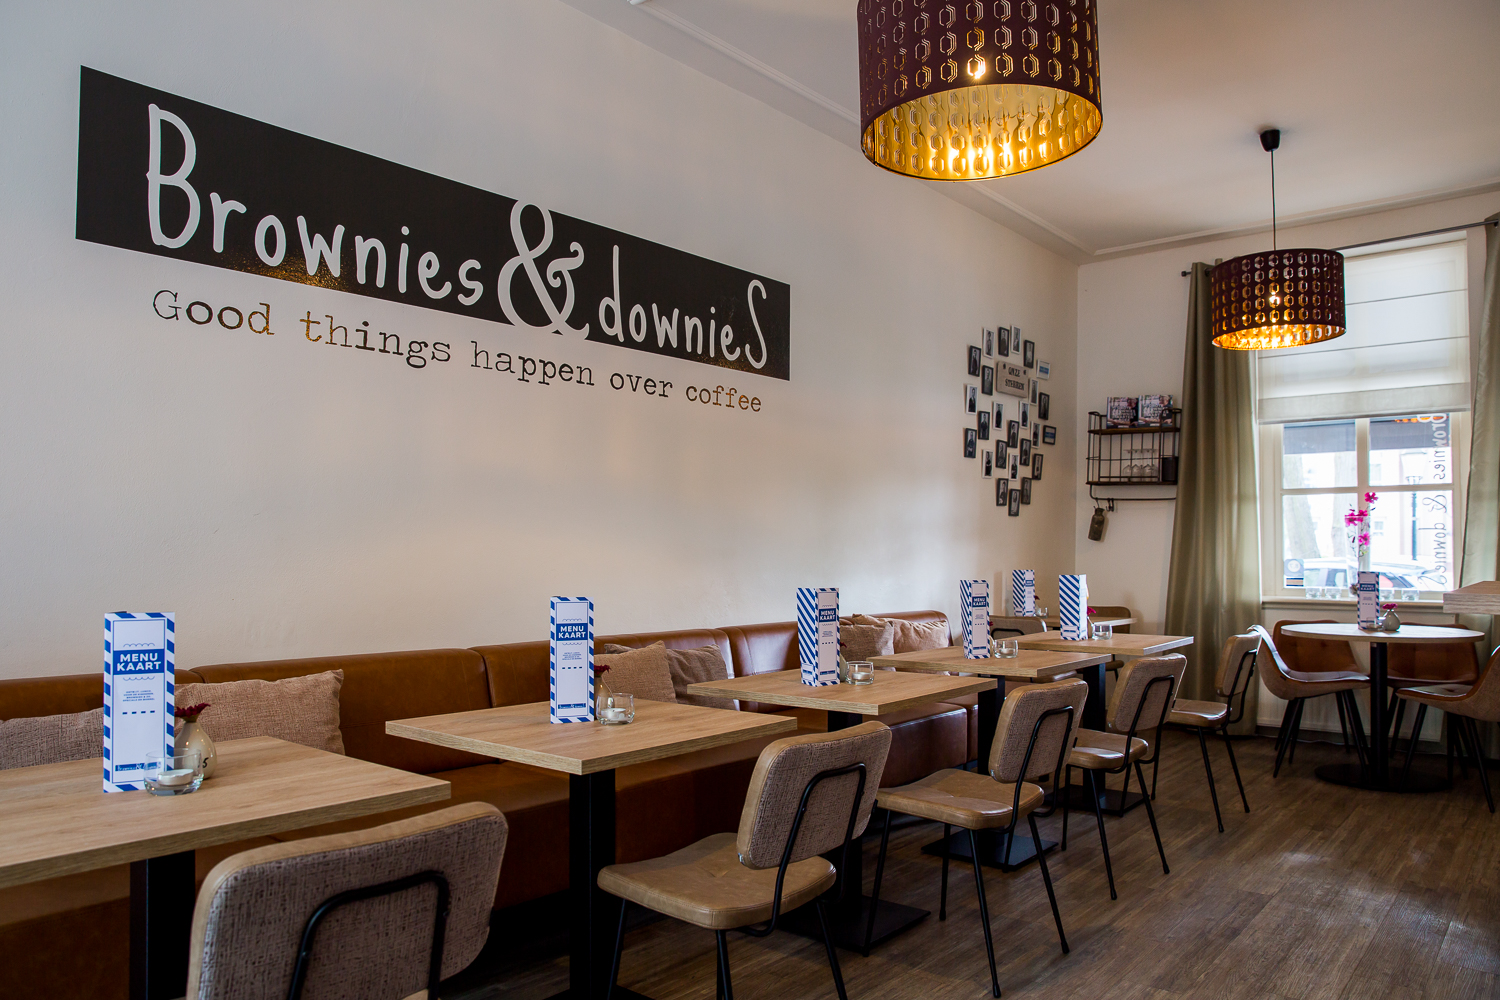 Downies In De Keuken Brownies Downies Valkenswaard